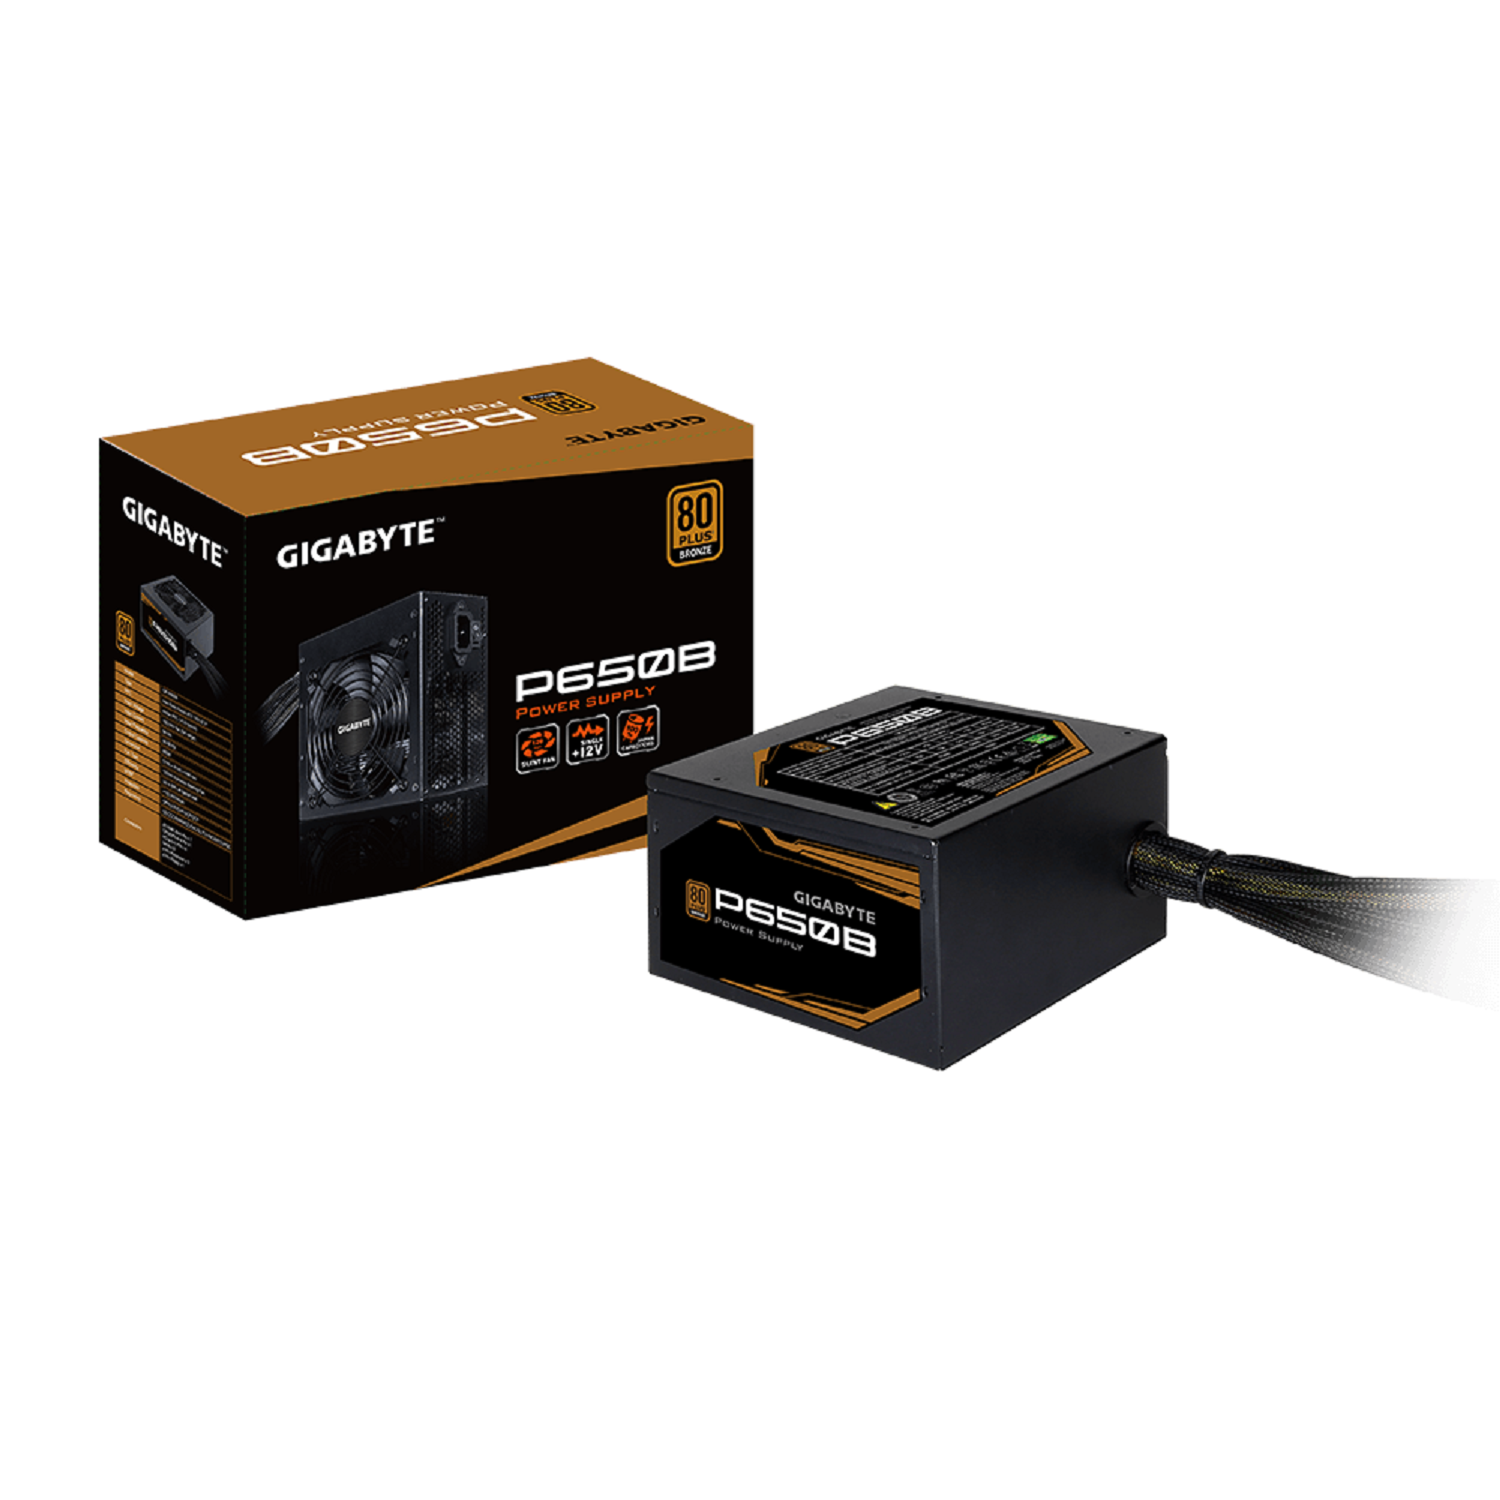 Gigabyte PSU gp-650B